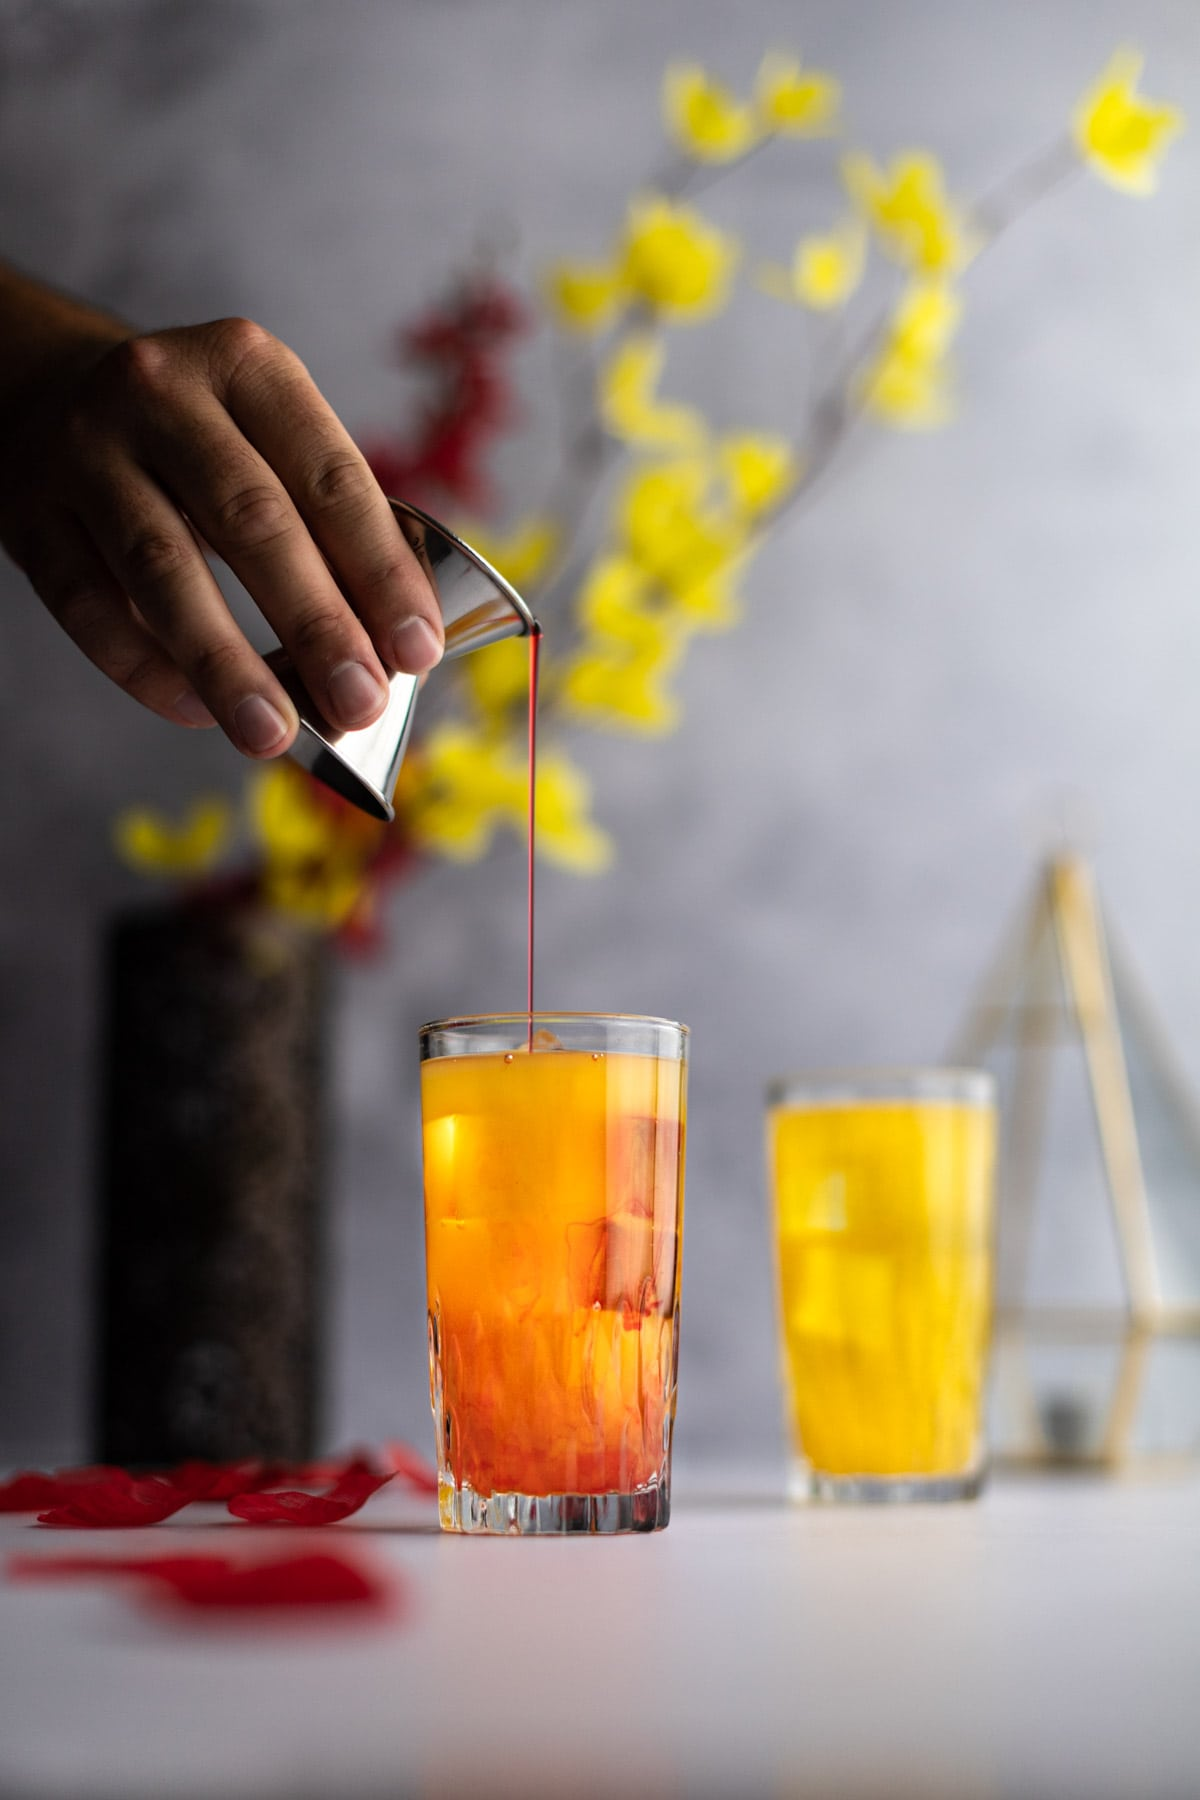 Grenadine syrup being poured into a yellow cocktail, half mixed with the peach nectar, red and yellow flowers in the background.